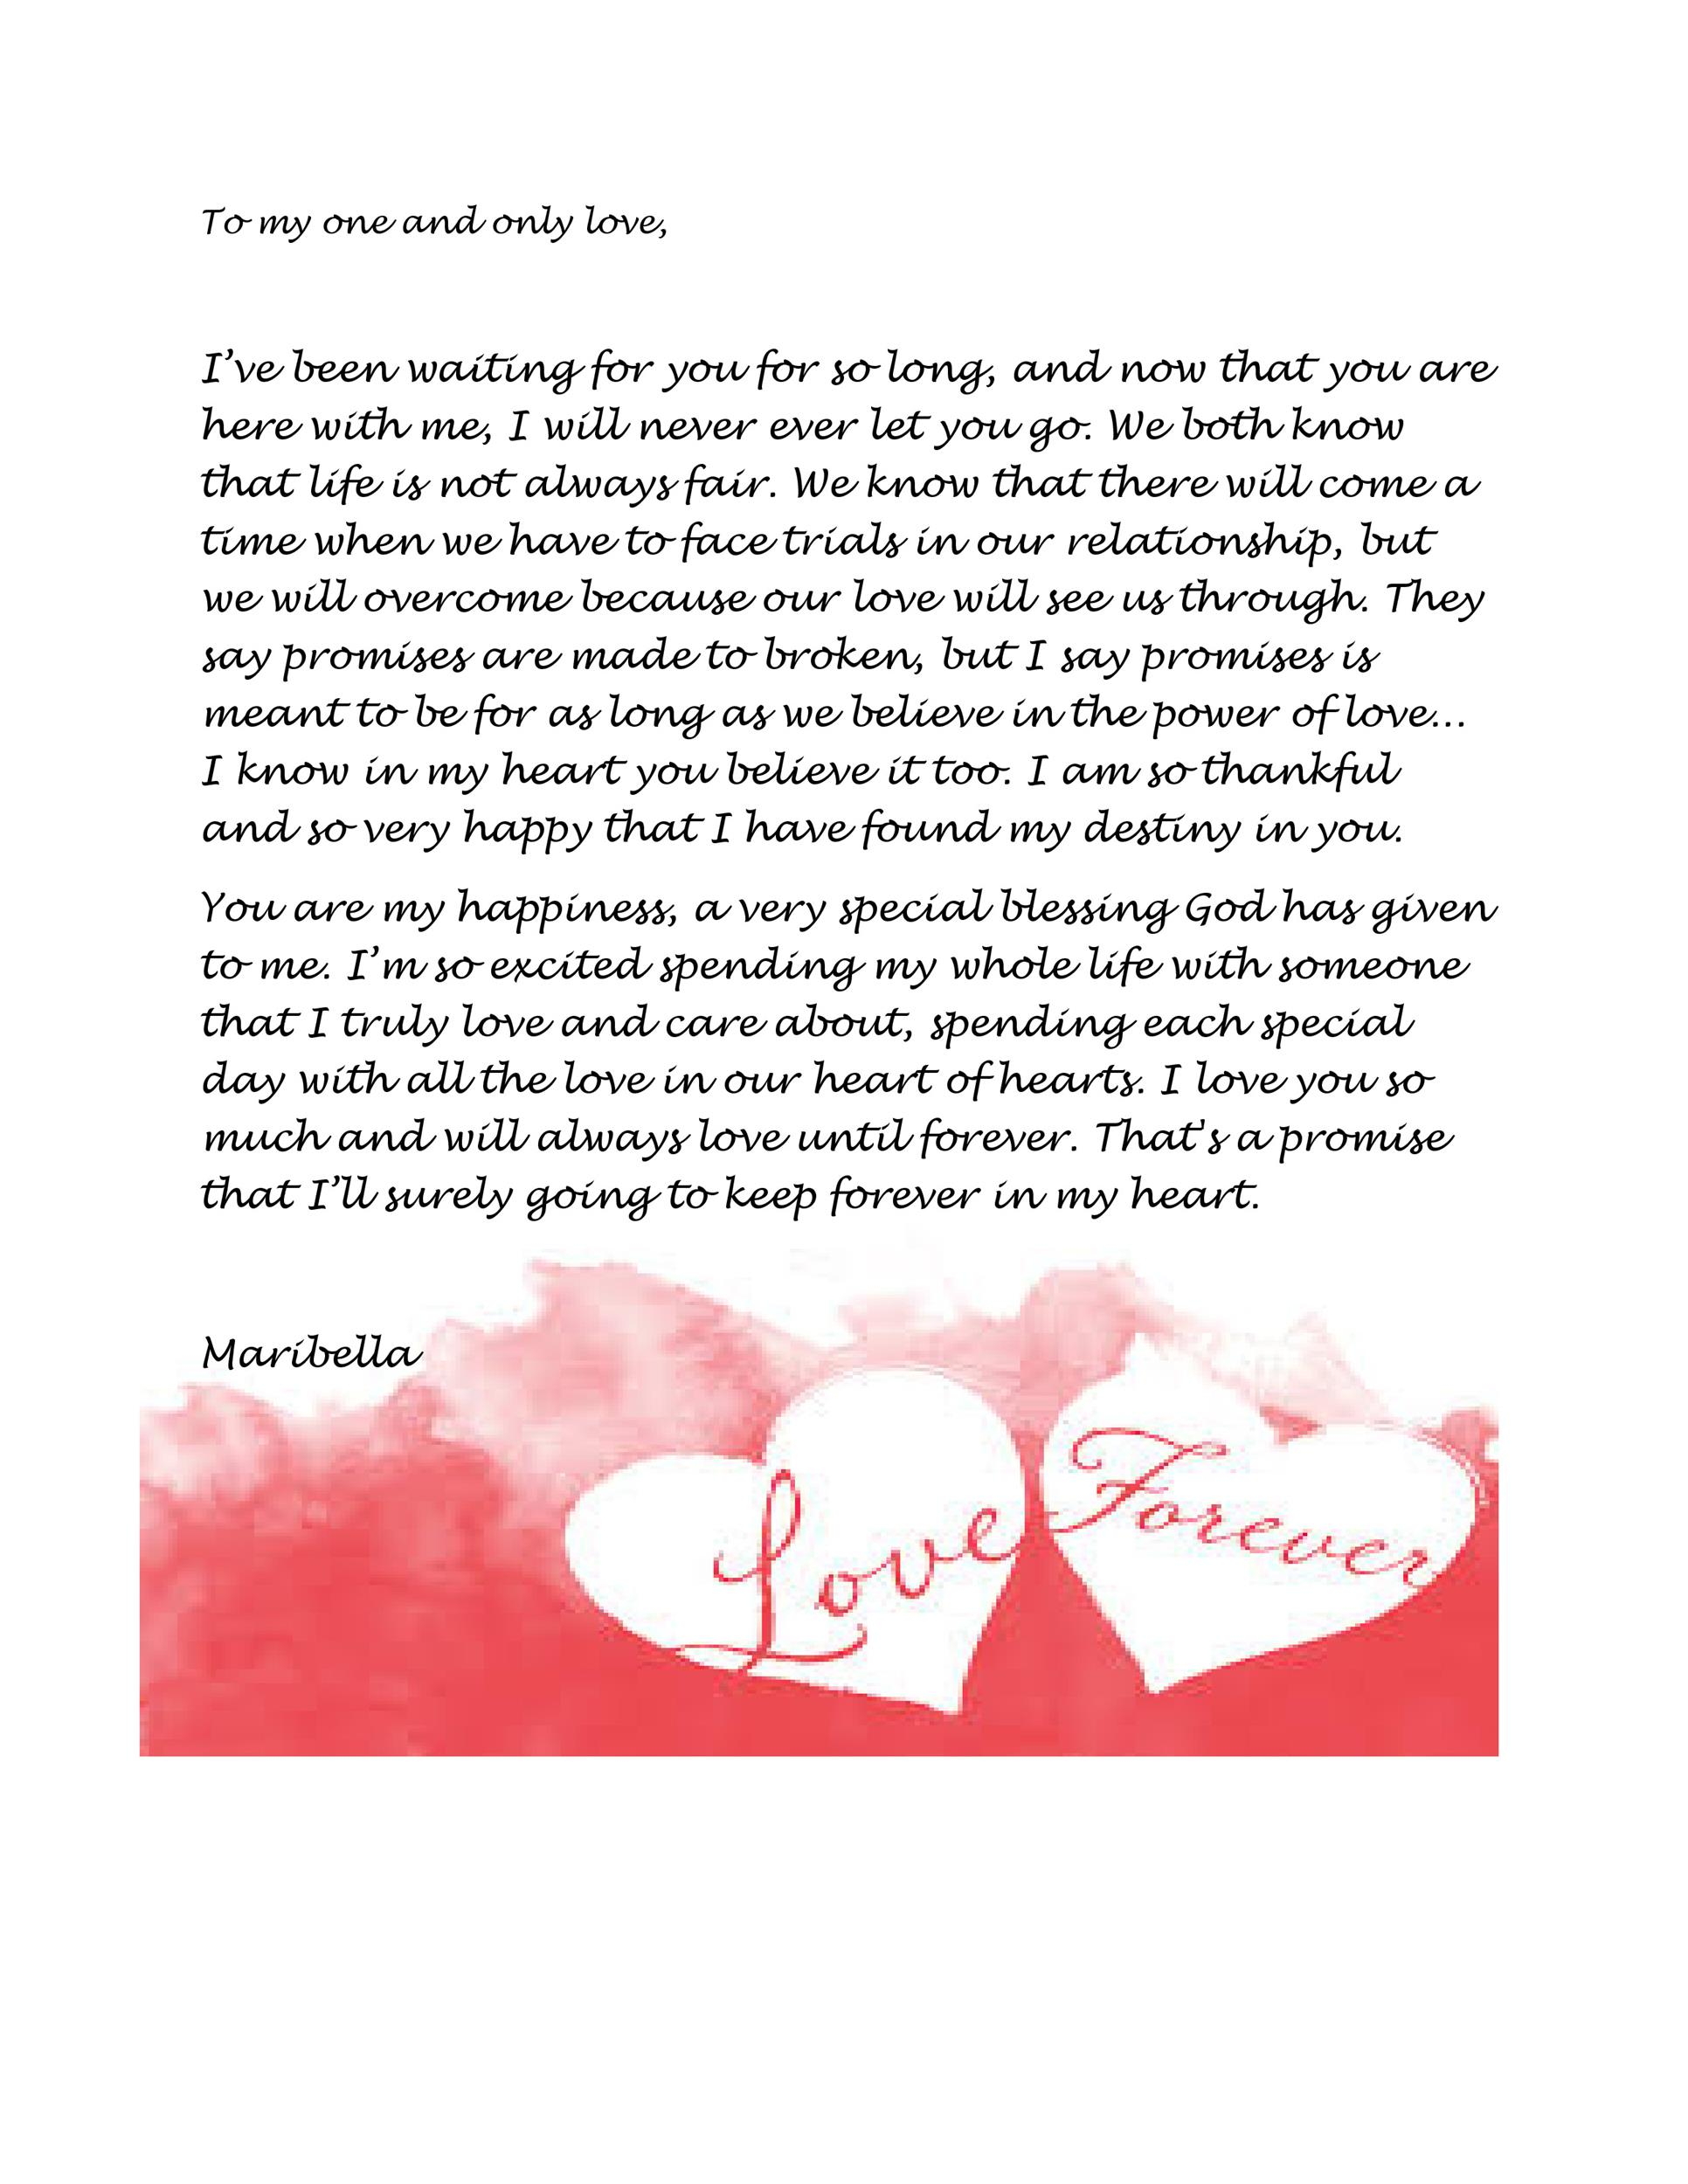 Romantic Love Letters Sample Romantic Love Letter Documents In Word